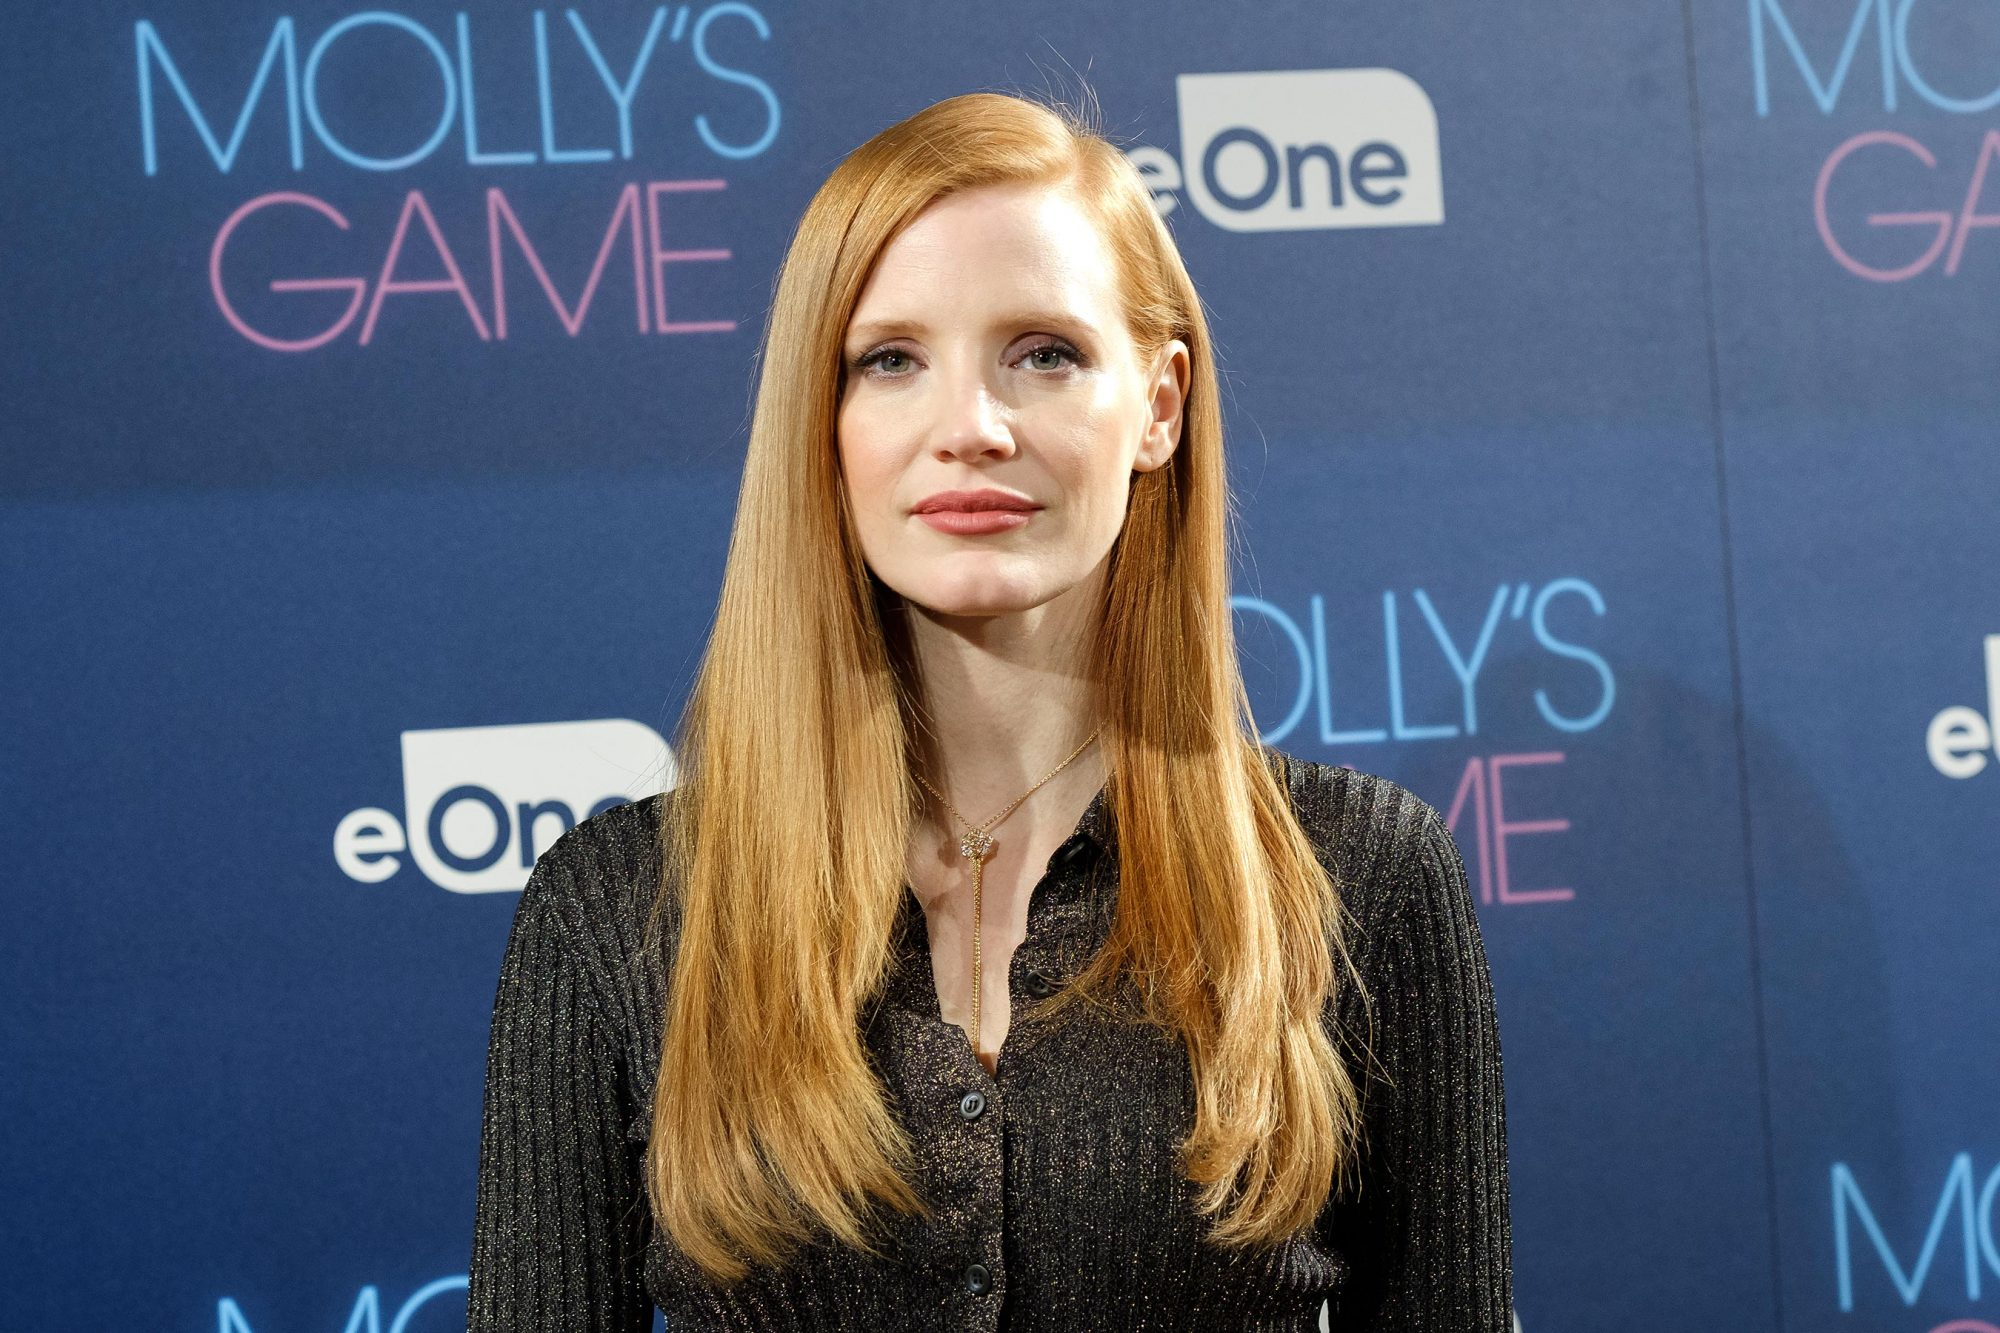 Jessica Chastain Attends 'Molly's Game' Photocall in Madrid